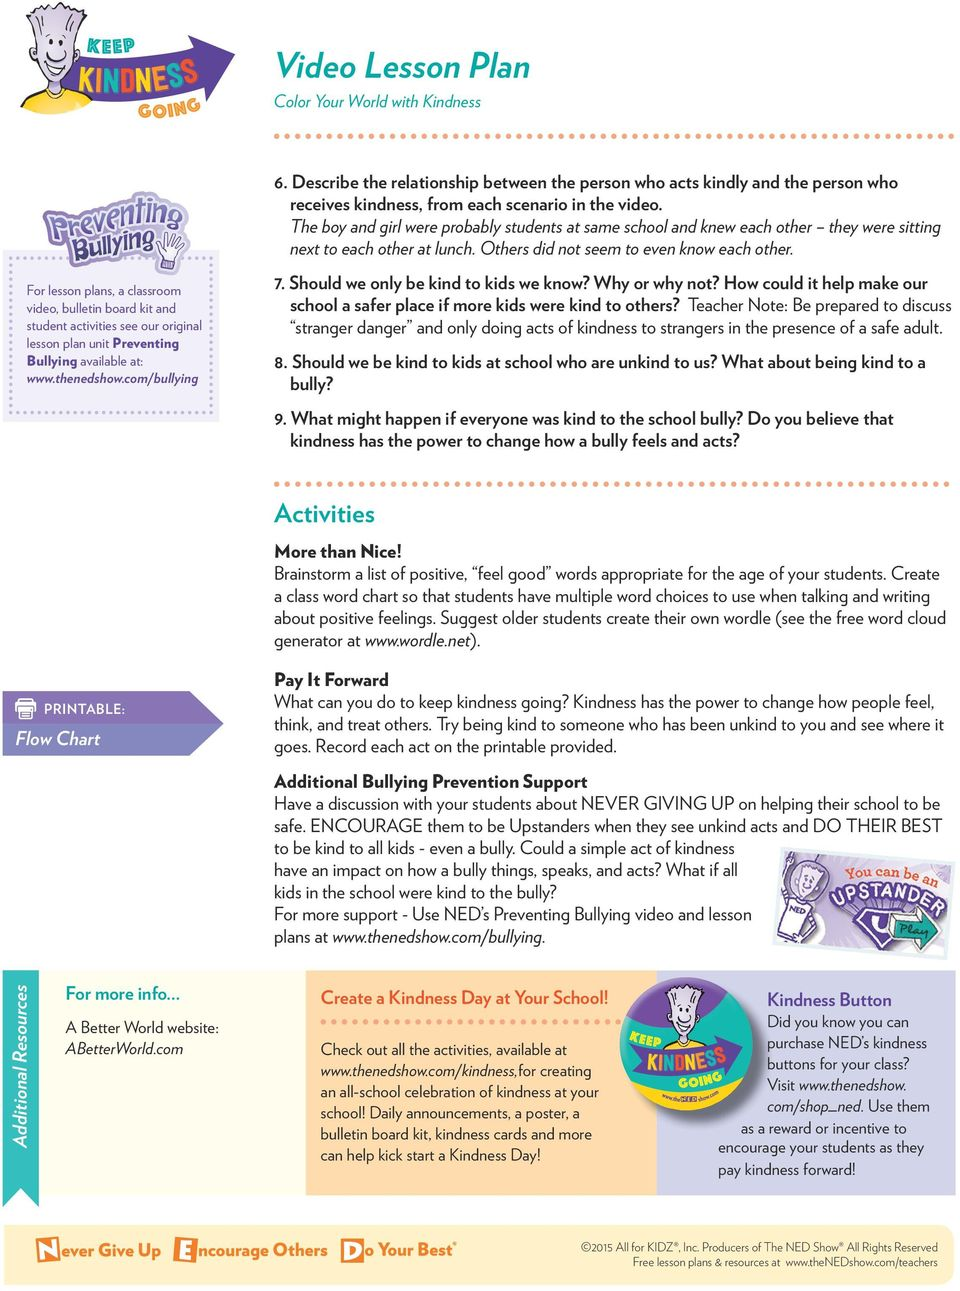 For lesson plans, a classroom video, bulletin board kit and student activities see our original lesson plan unit Preventing Bullying available at: www.thenedshow.com/bullying 7.